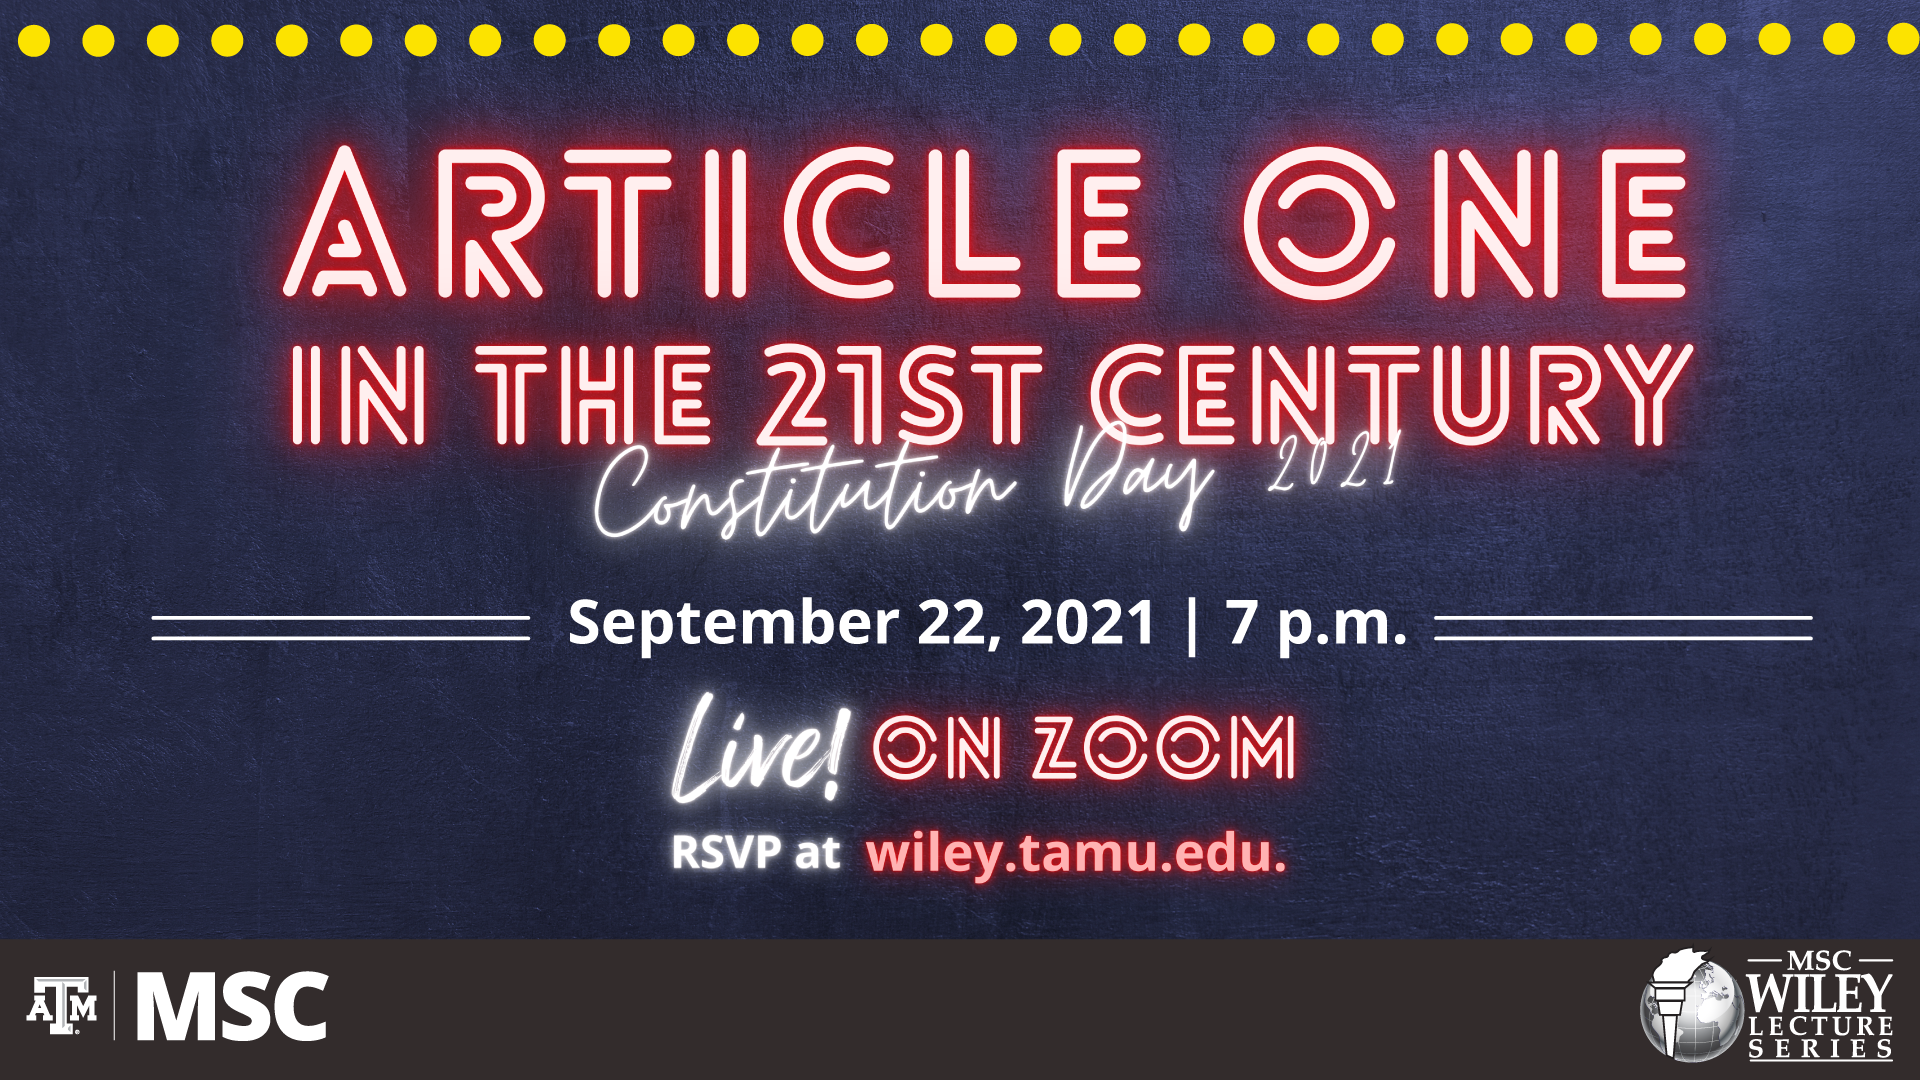 MSC Wiley Presents Article One in the 21st Century, Constitution Day 2021, September 22, 2021 at 7 p.m. Live! on Zoom. RSVP at wiley.tamu.edu